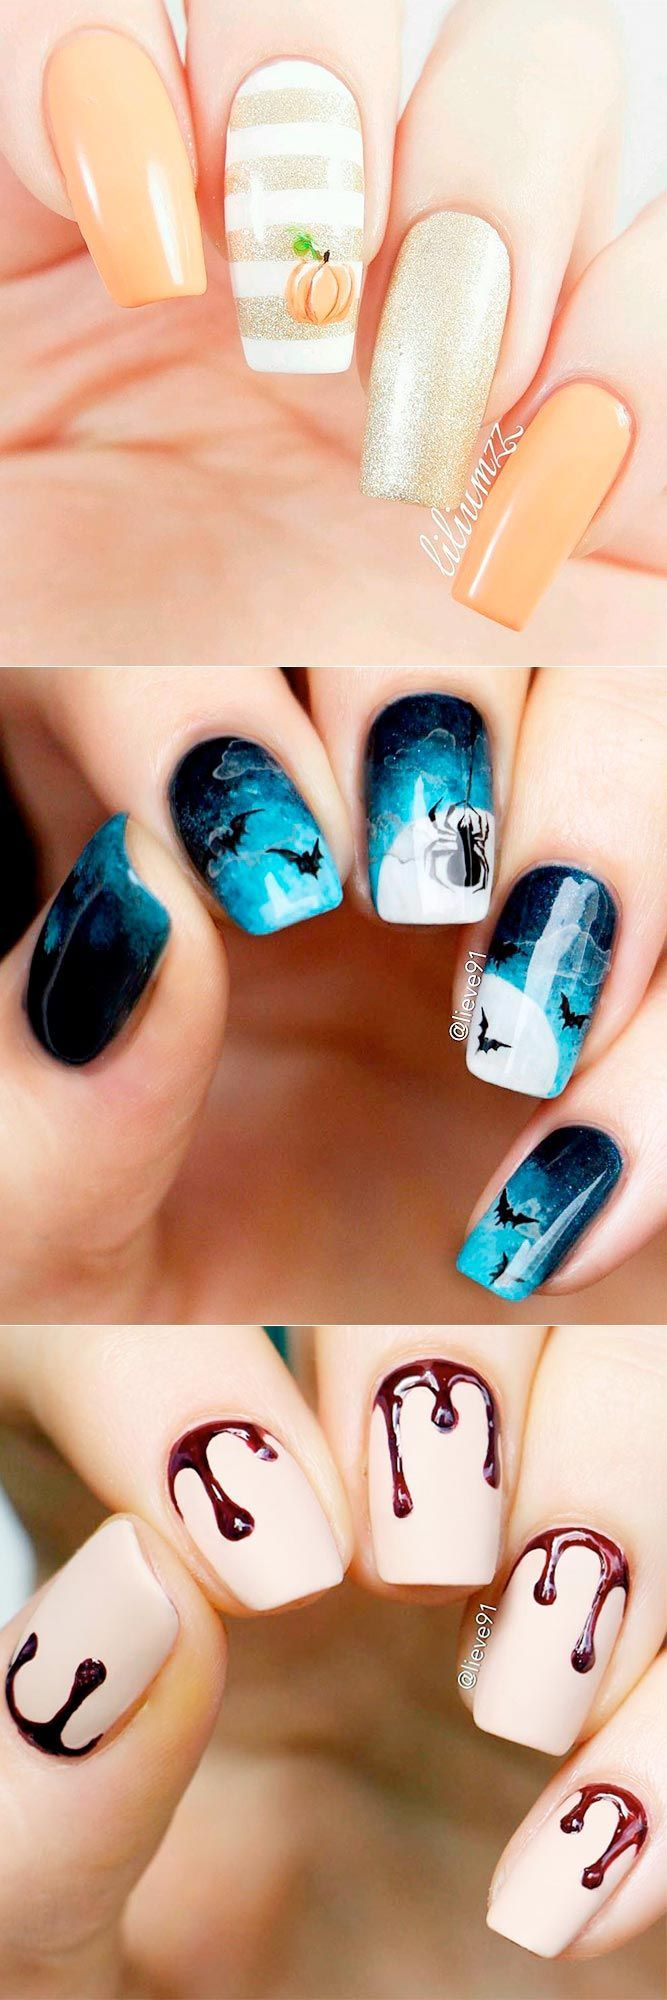 Halloween nail designs are the perfect way to express yourself when the time comes. Besides, all you need is to get a nice idea and we have many!